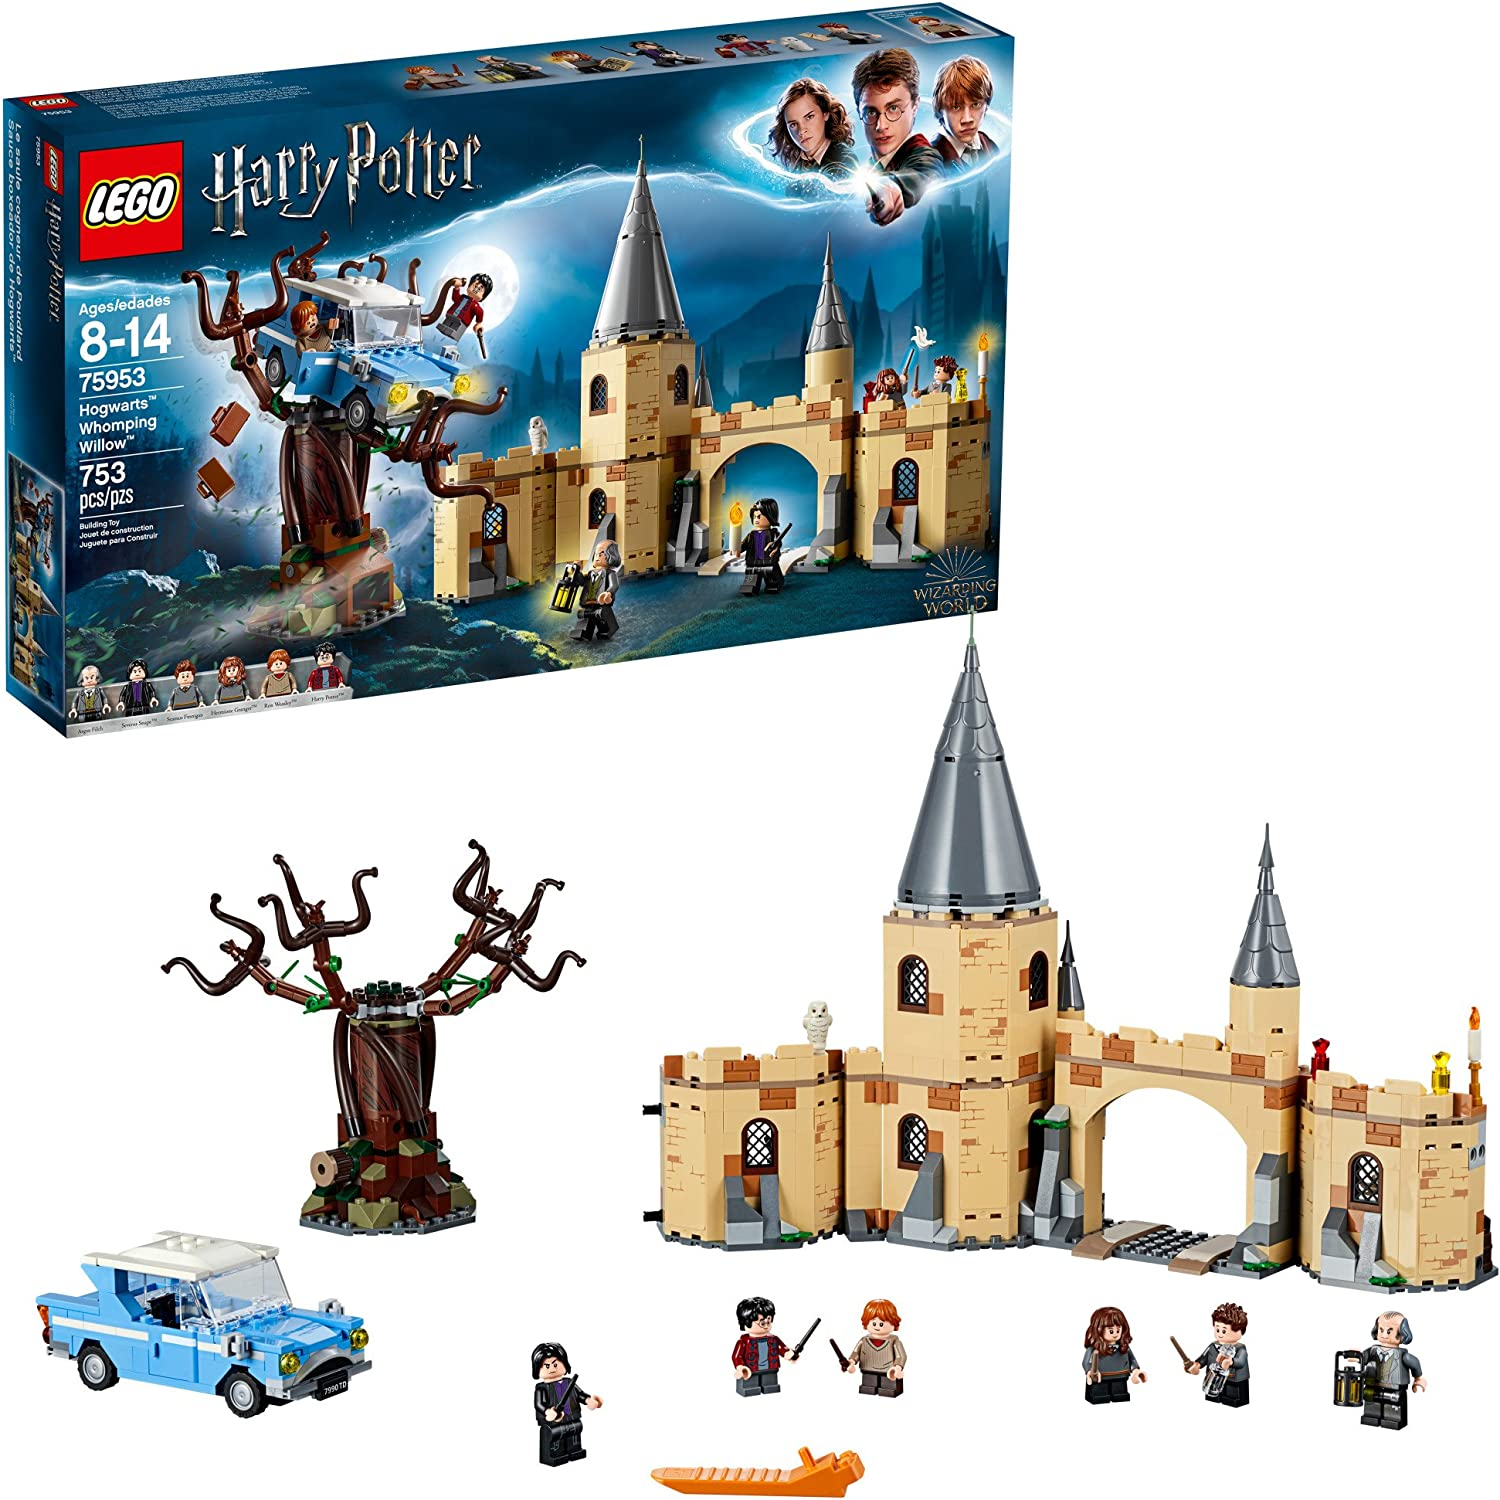 Lego Harry Potter And The Chamber Of Secrets Hogwarts Whomping Willow 75953 Magic Toys Building Kit Prisoner Of Azkaban Hedwig Hermoine Granger And Severus Snape 753 Pieces Toys Games